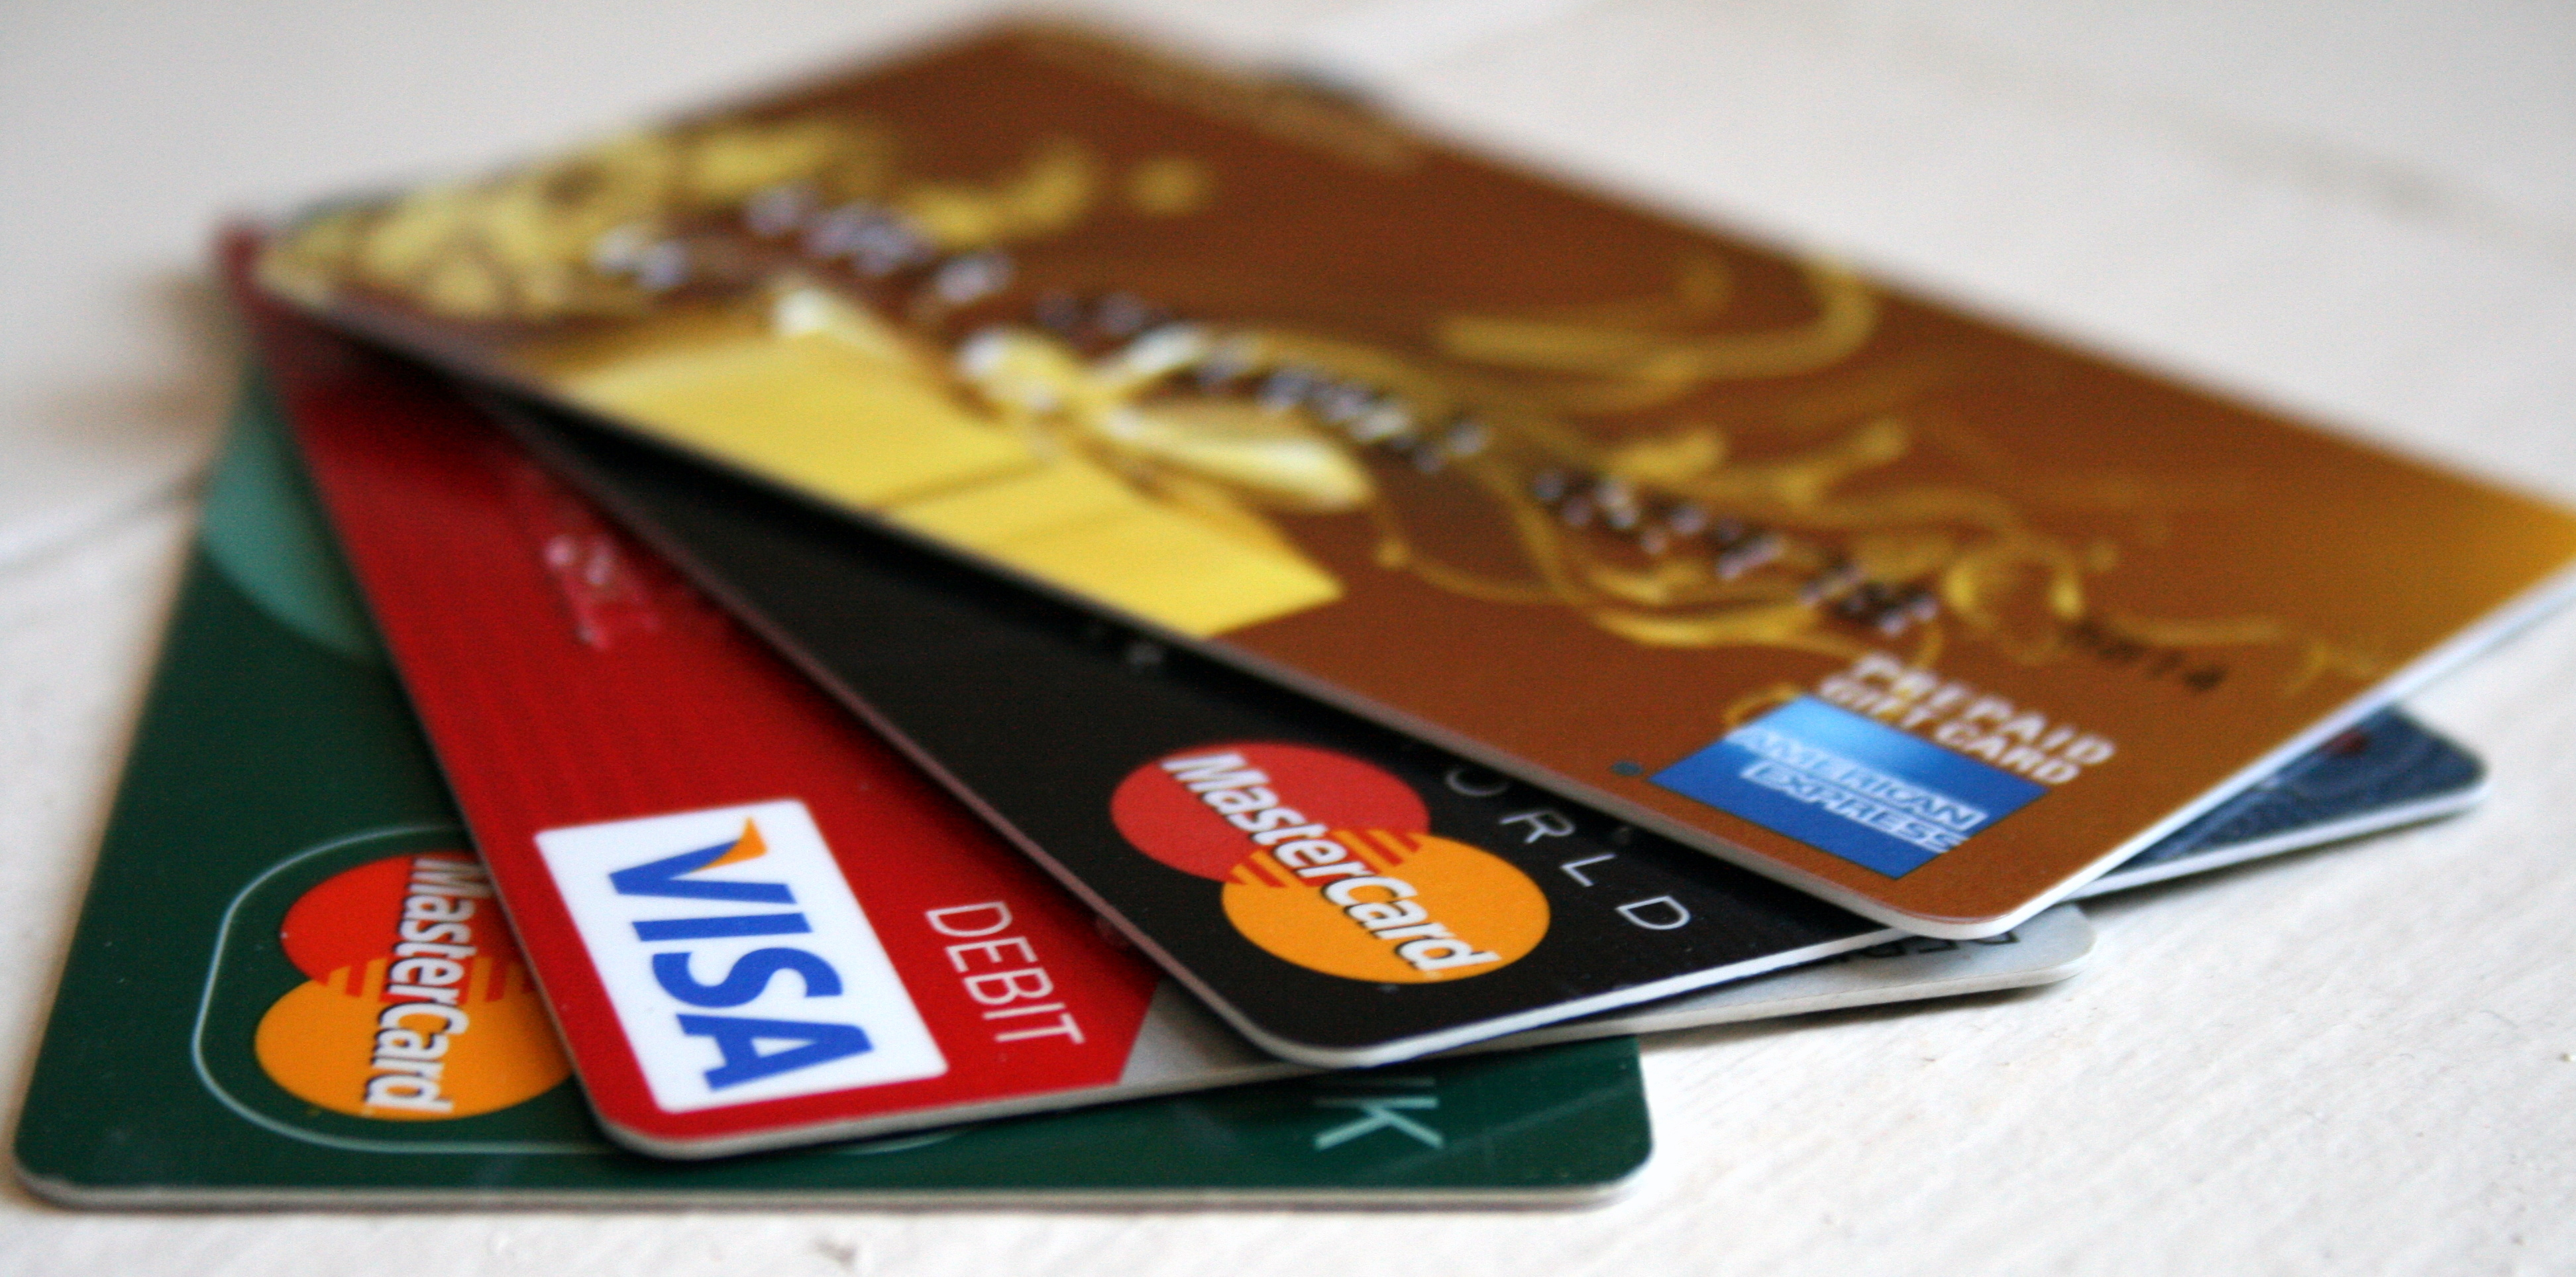 3 reasons why you should abuse your credit card